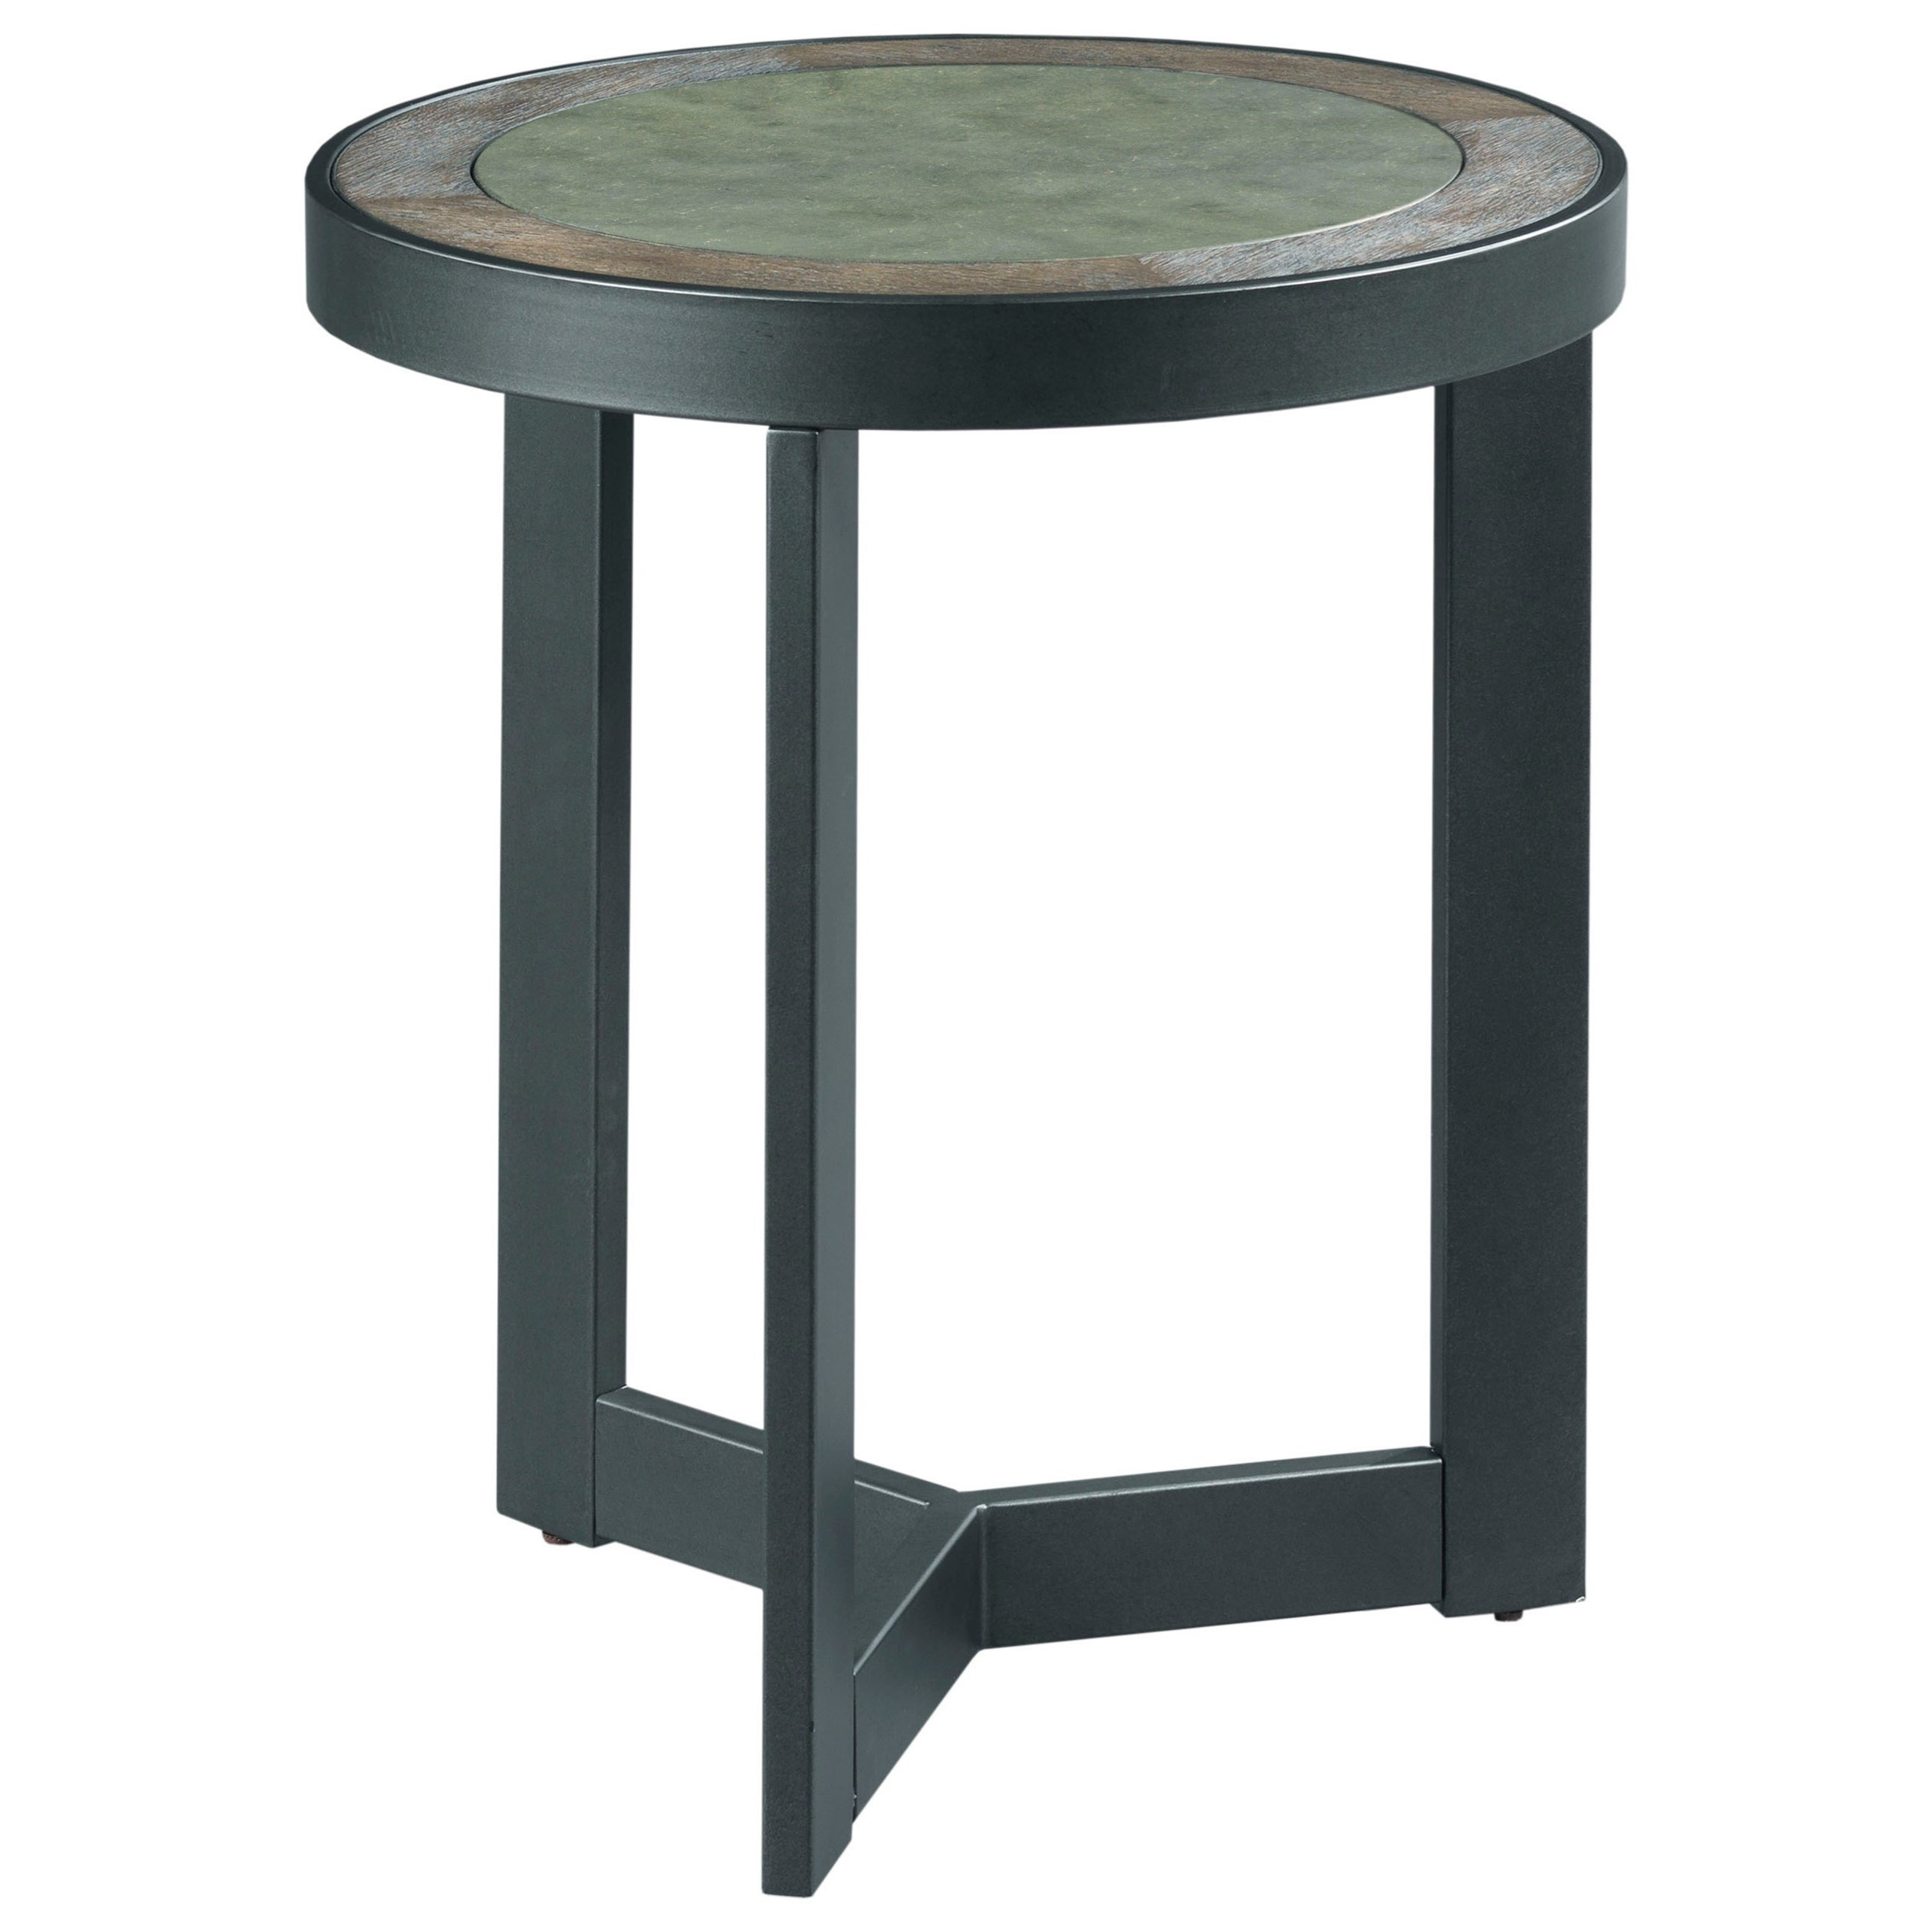 Hammary 650 End Table - Item Number: 650-917